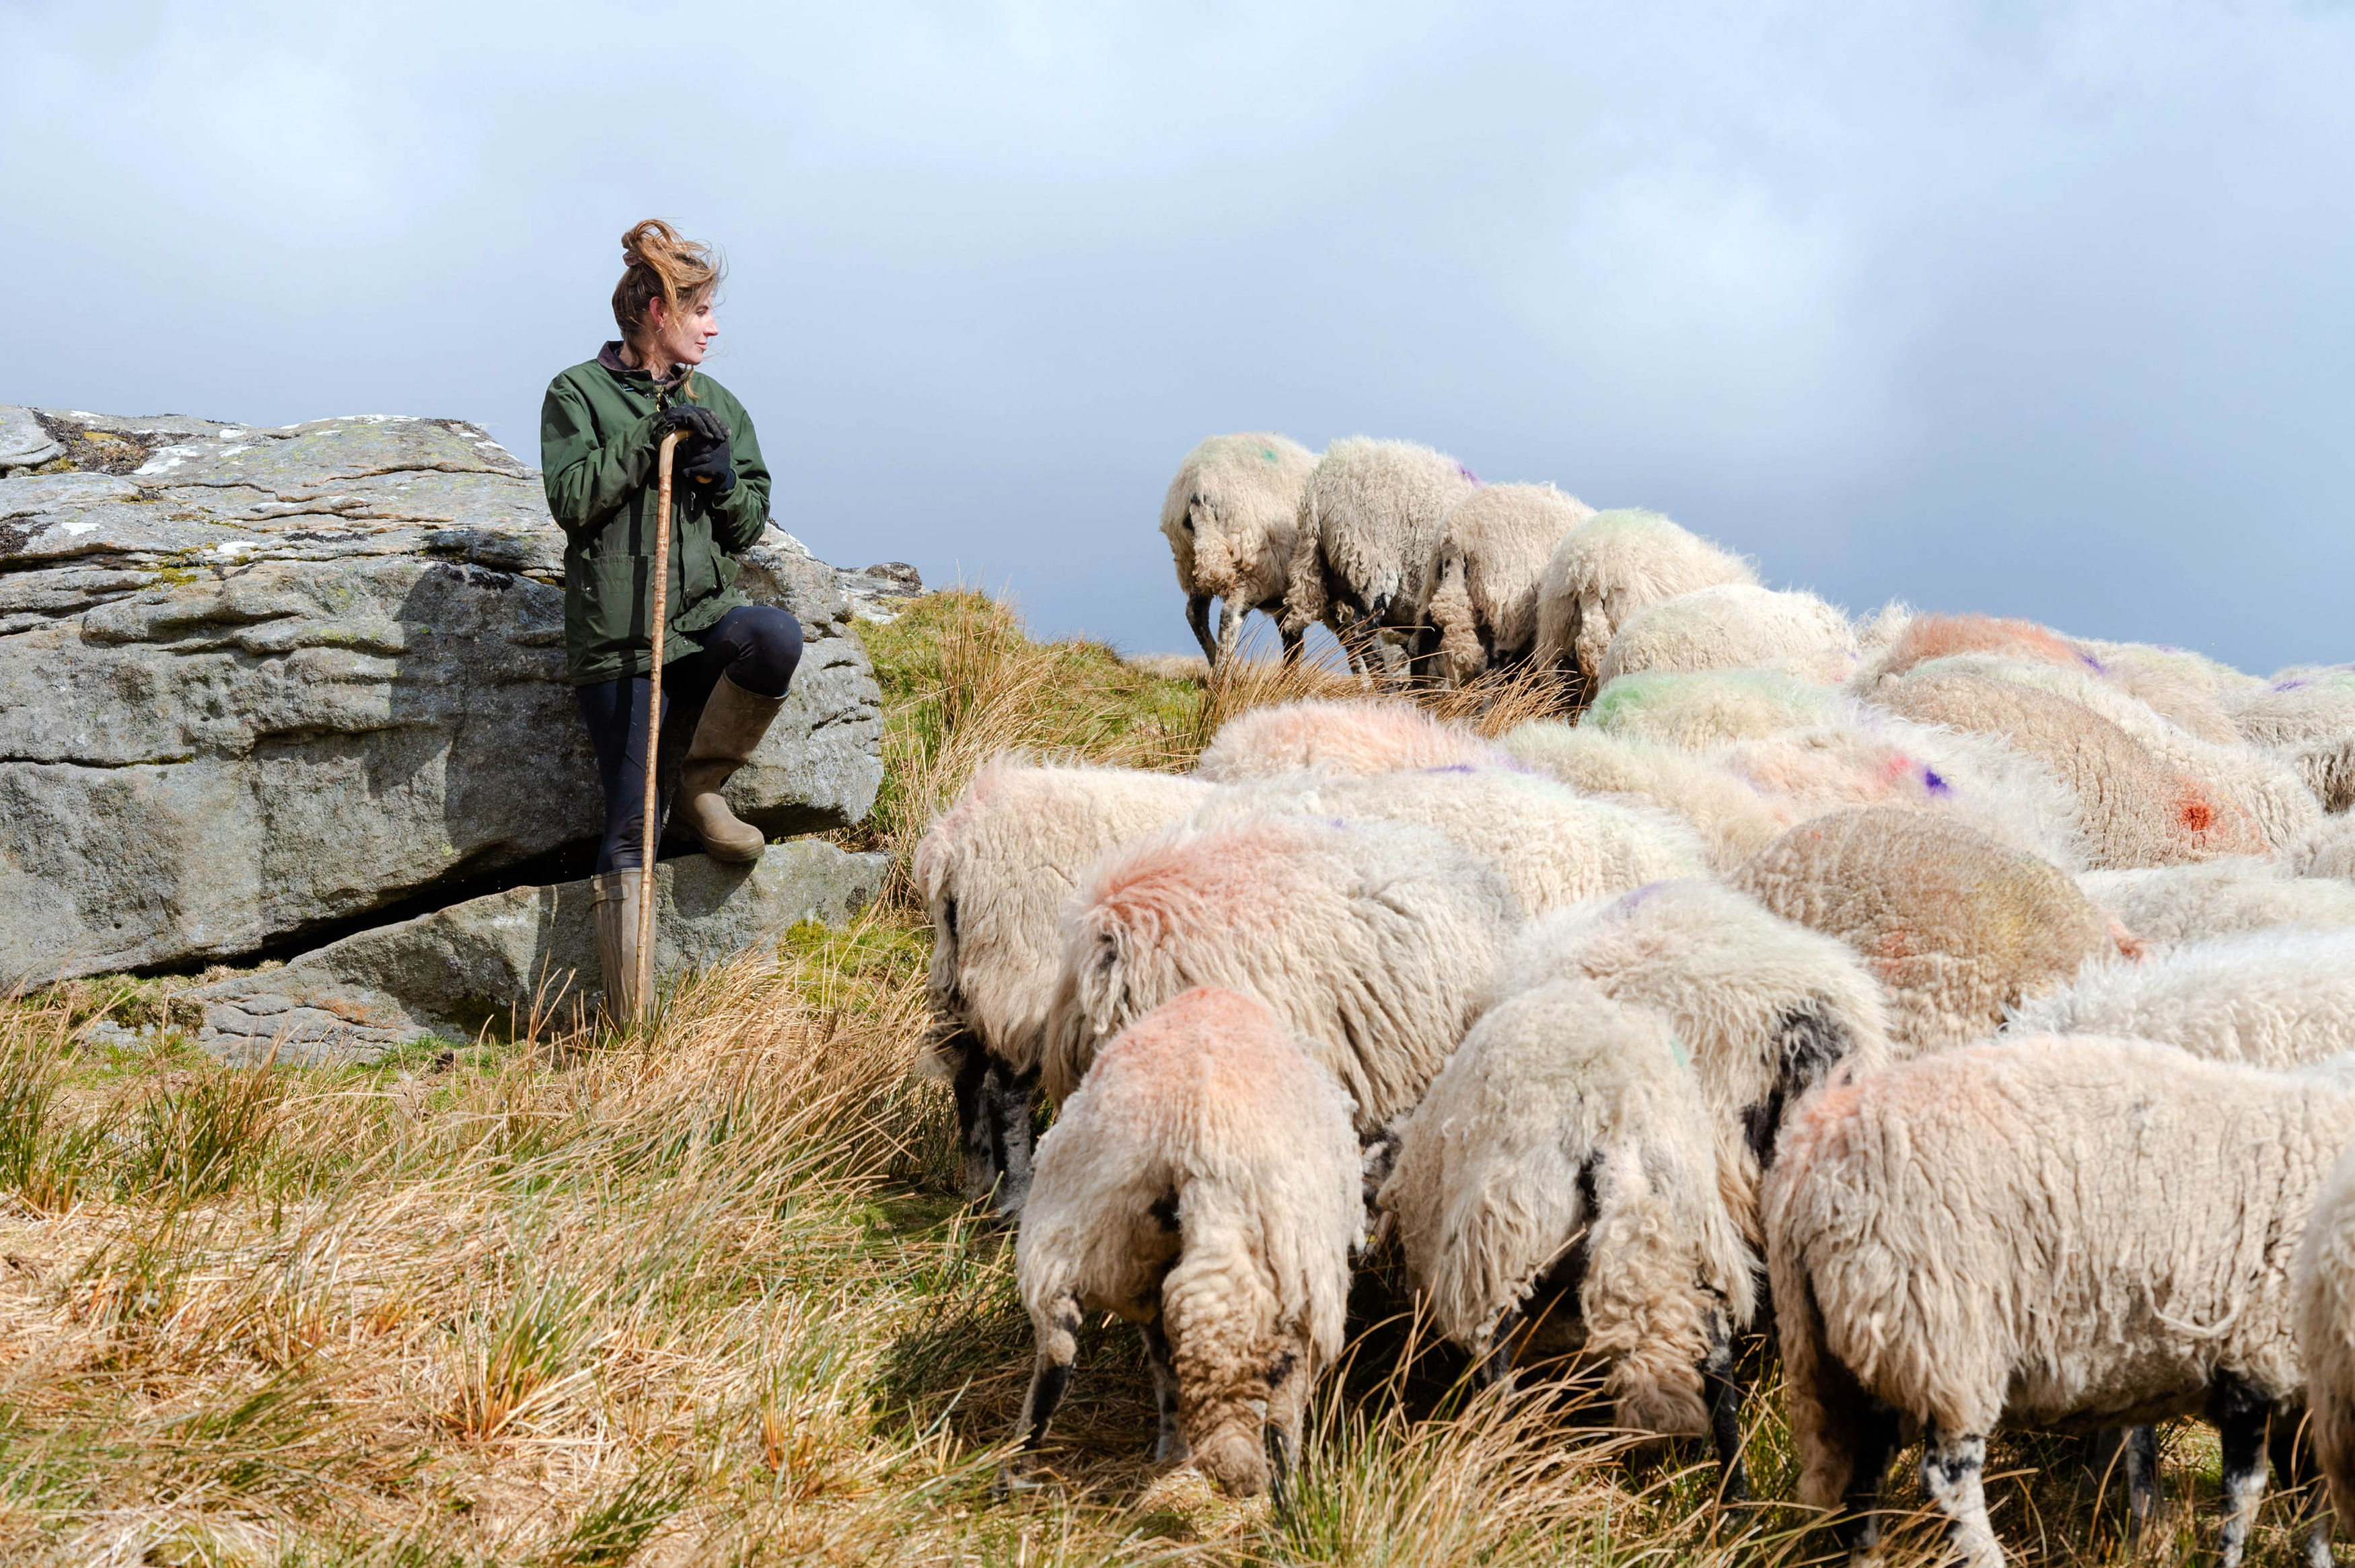 <p>EDITORIAL USE ONLY Yorkshire Shepherdess, Amanda Owen launches Premier Inn's first-ever video streaming platform Ewe.Tube, dedicated to encouraging the nation to sleep better by digitally counting sheep. Issue date: Wednesday April 21, 2021.</p>